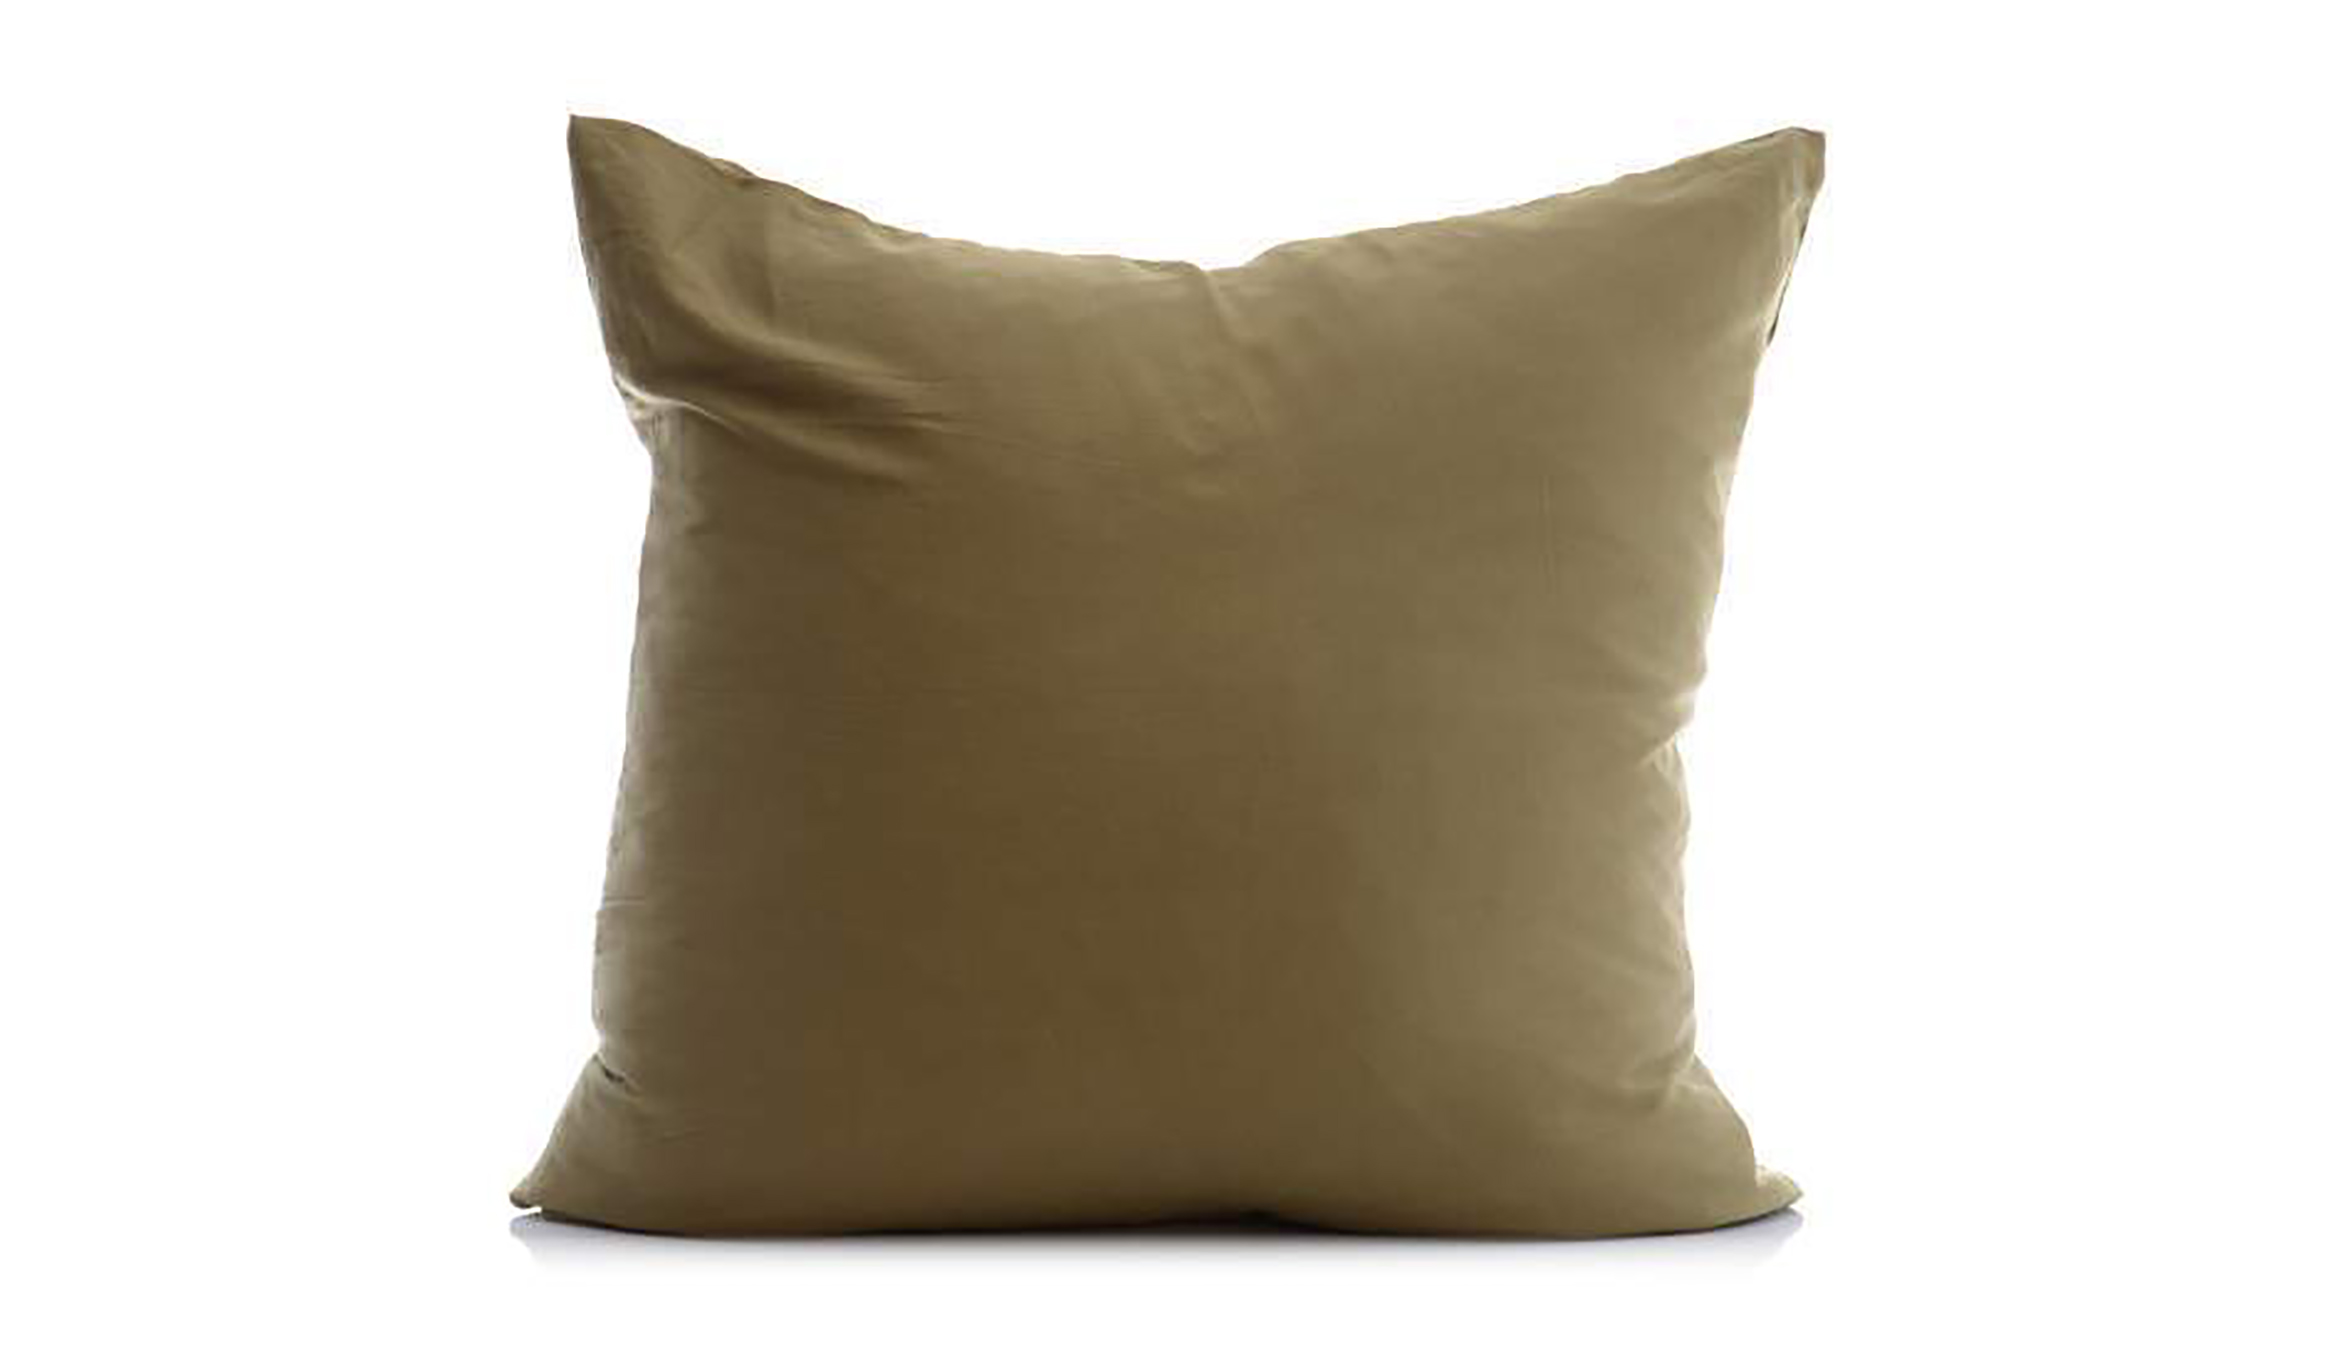 Olive Organic Large Cushion By Penney + Bennett